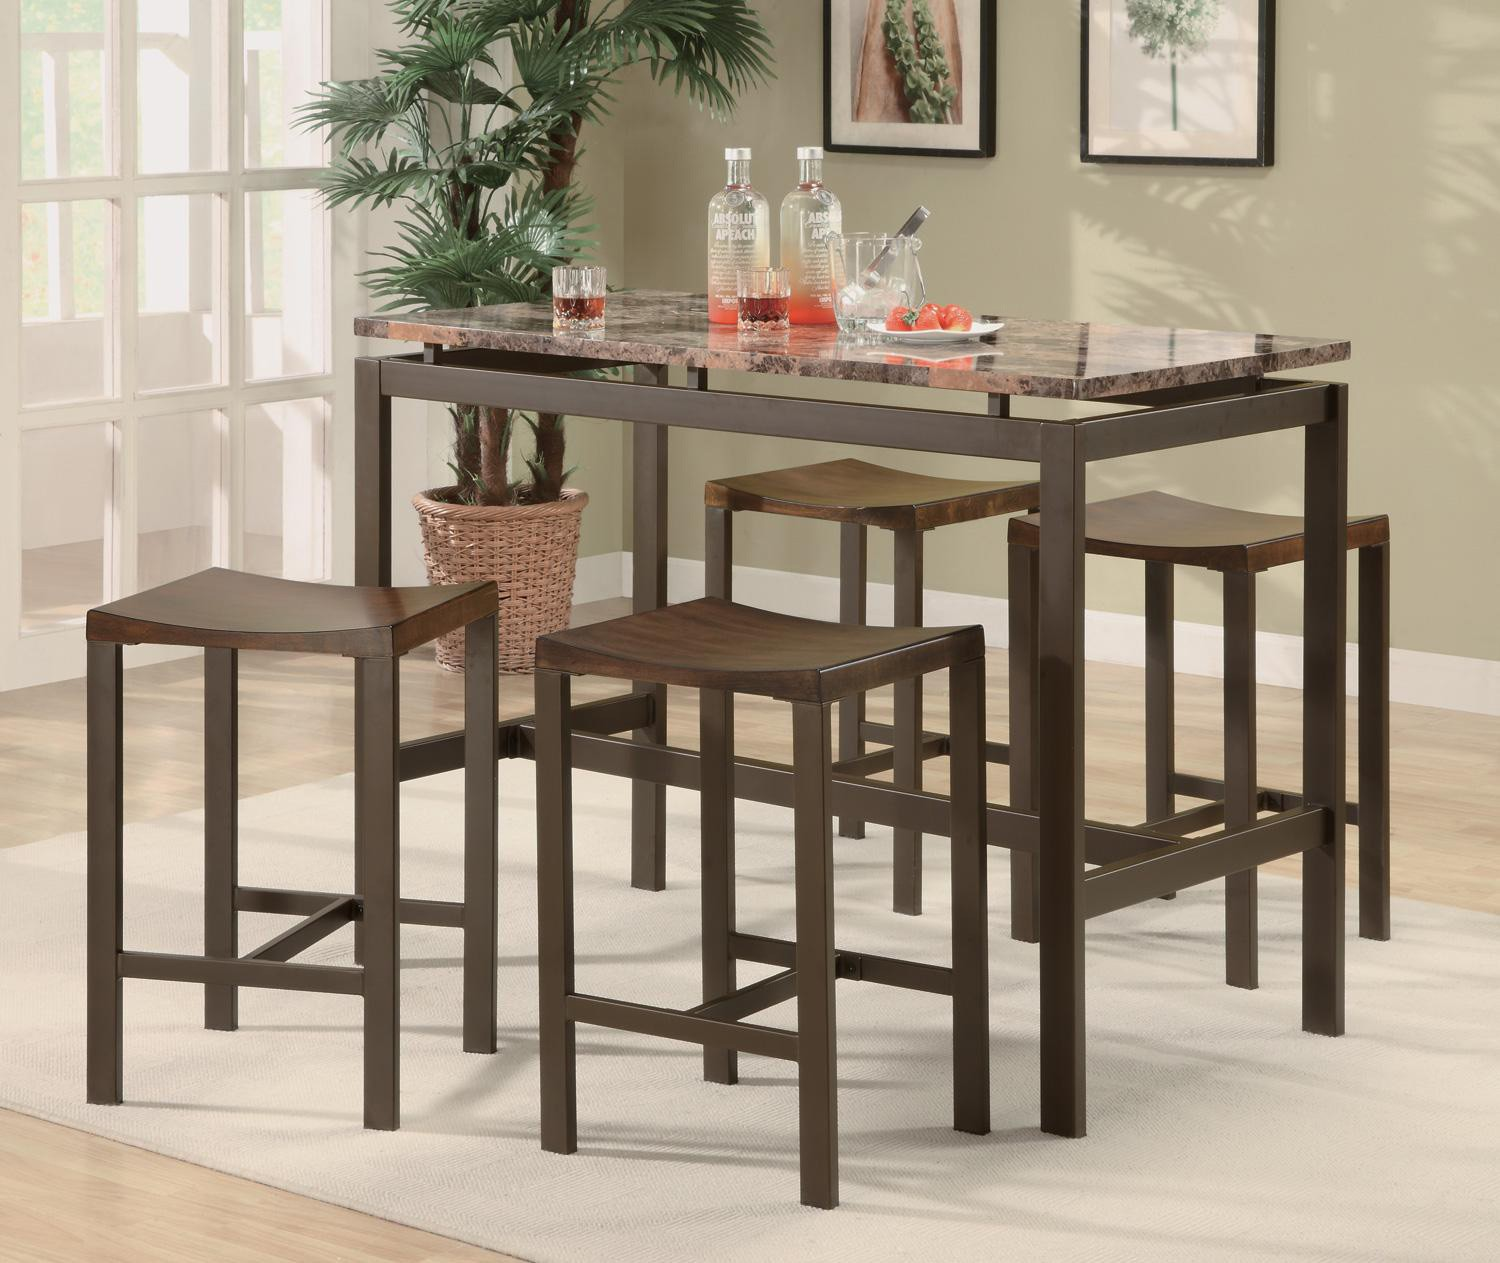 Pub Table And Stool Set